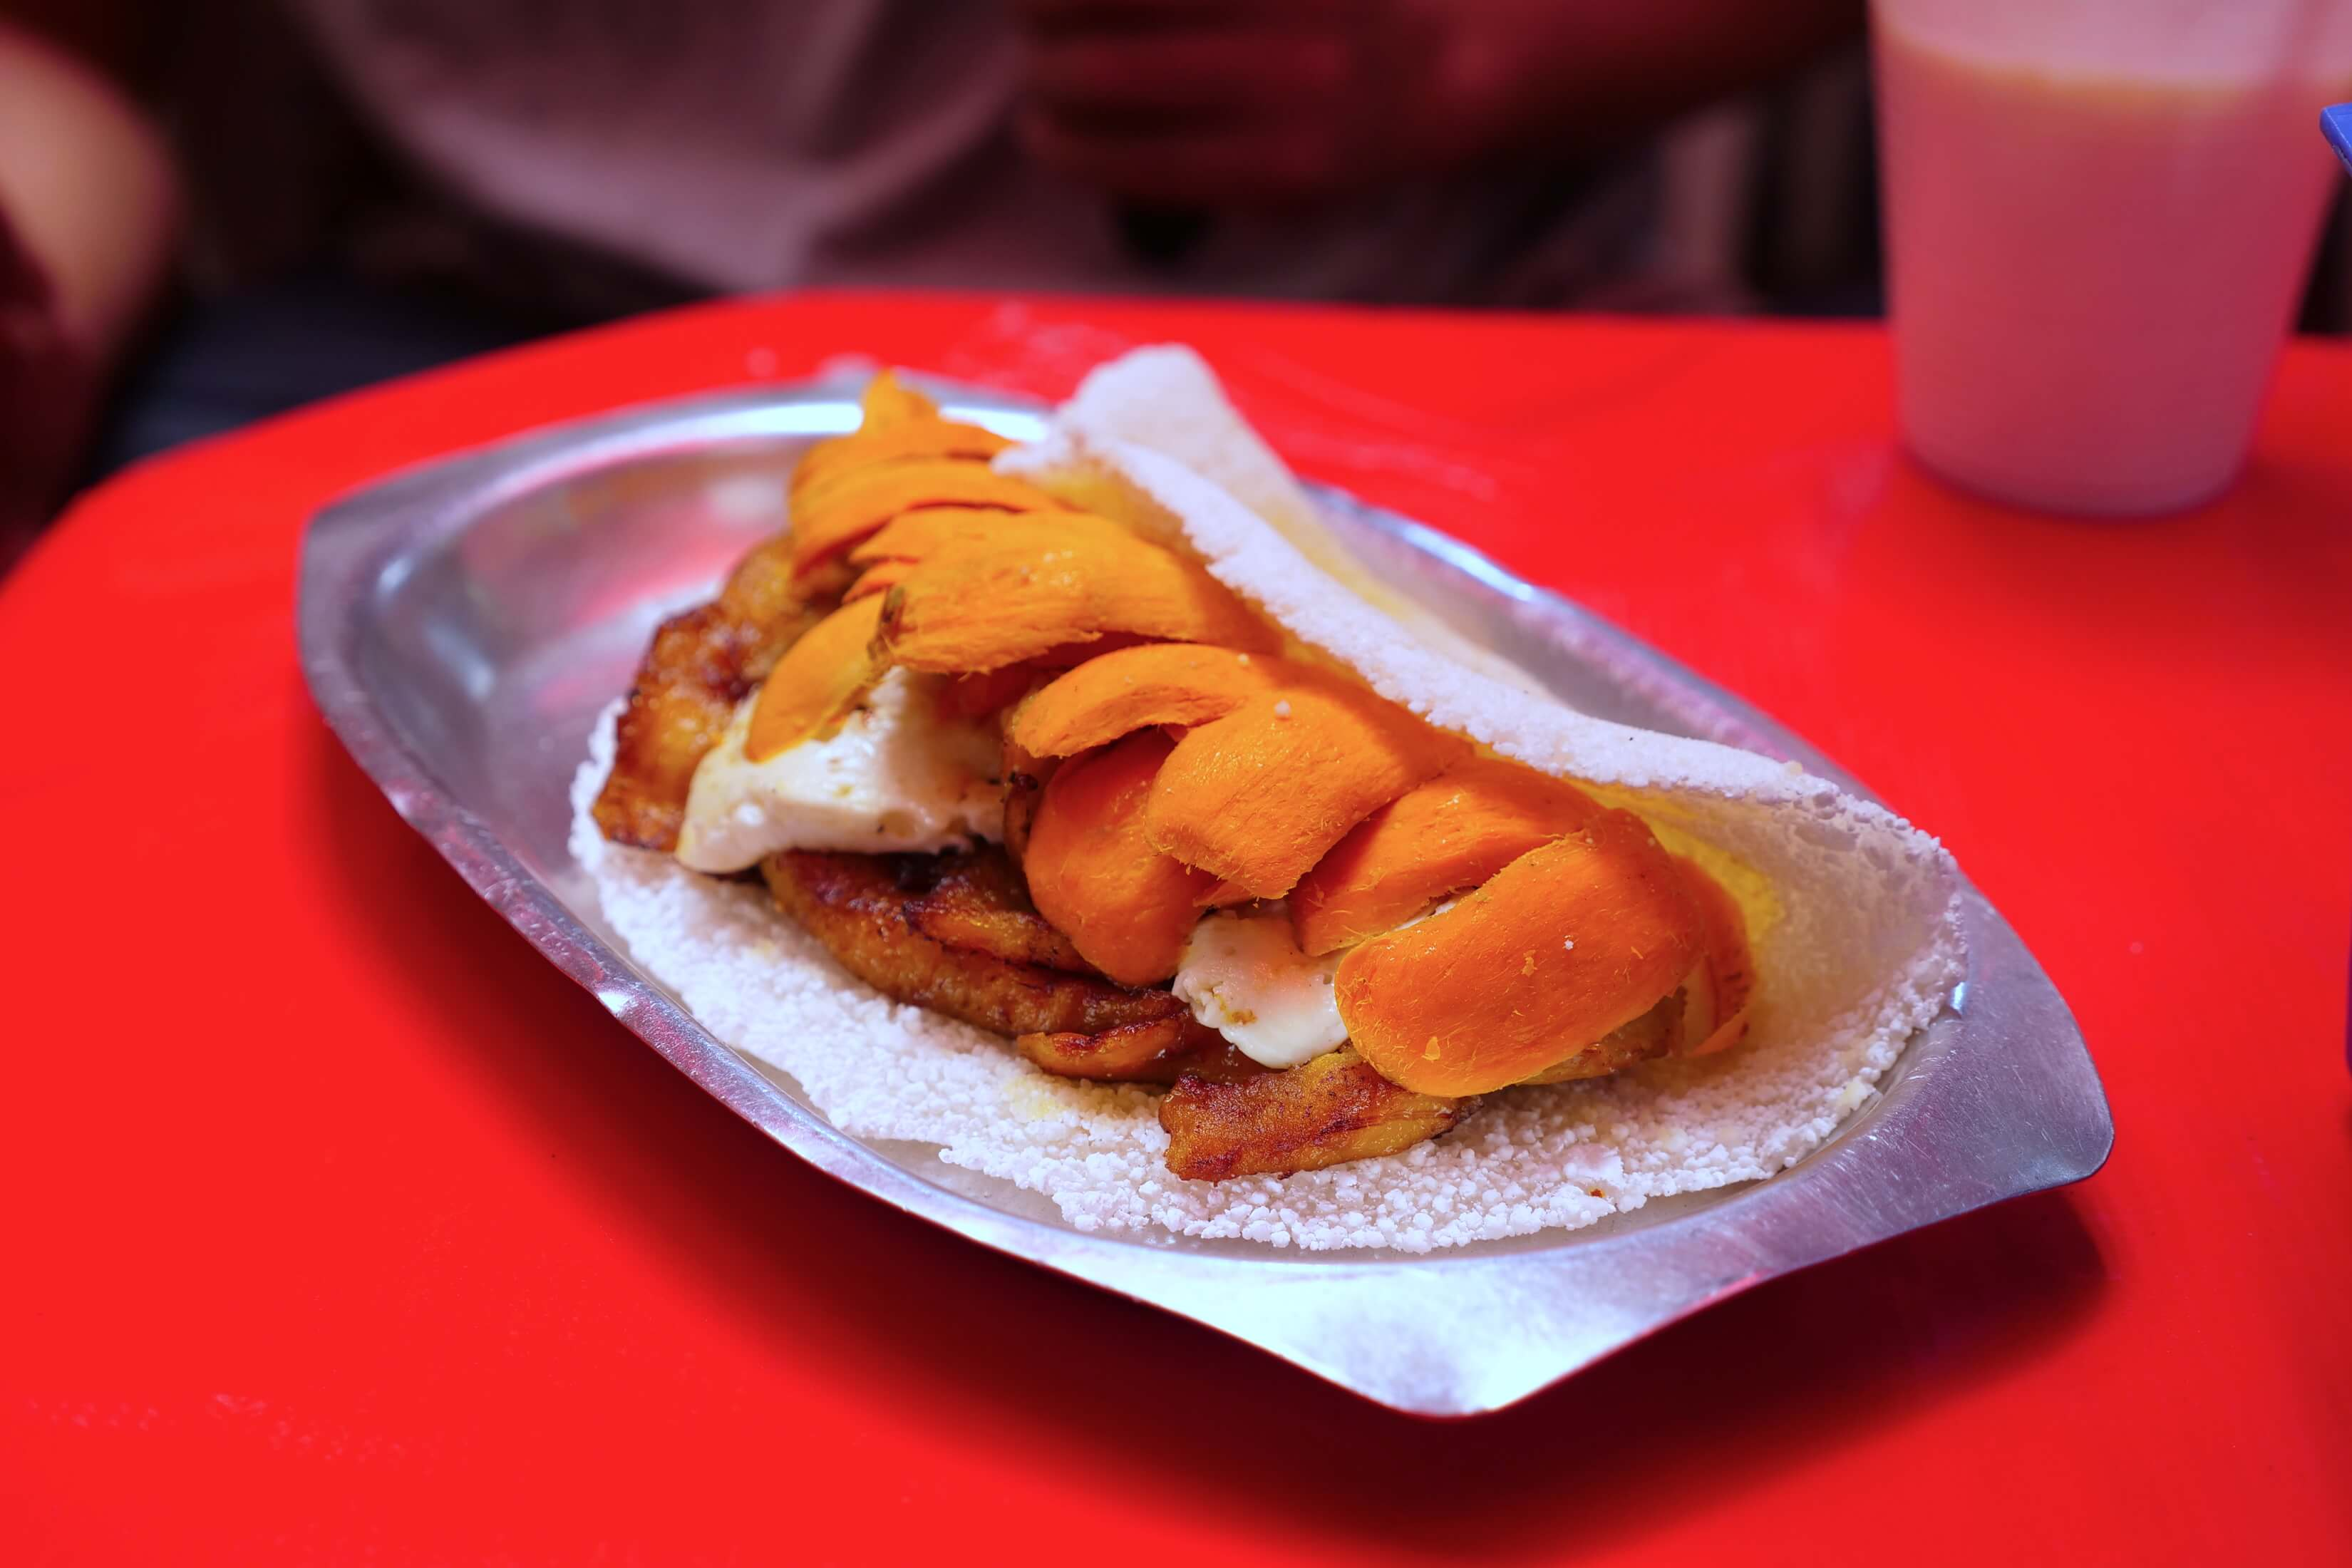 amazing and yet so simple, the flavor in this tapioca crepe will blow you away